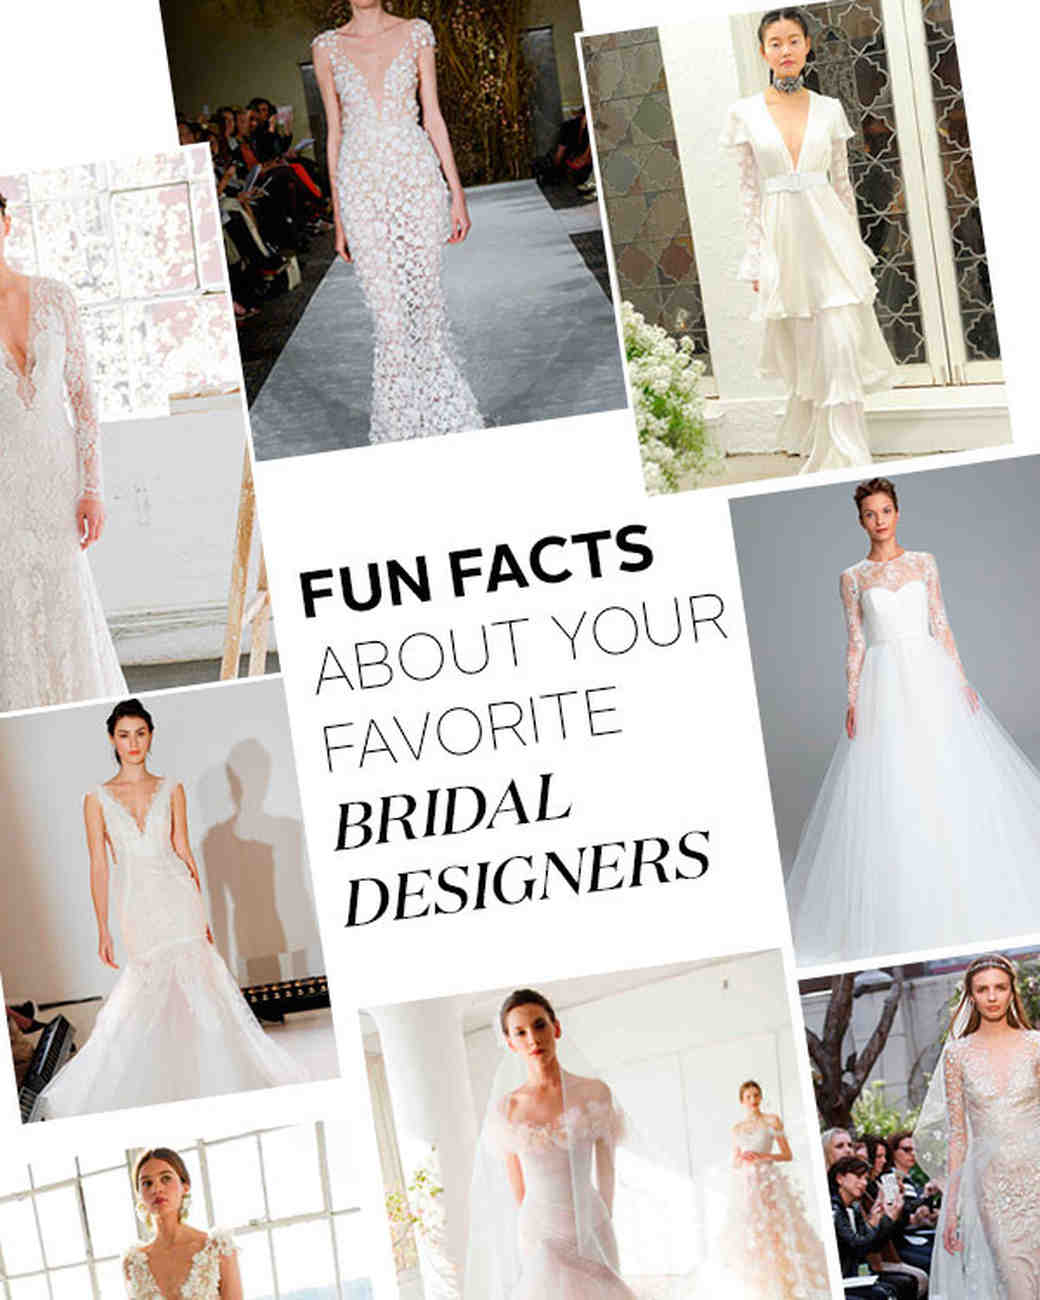 Fun facts about your favorite wedding dress designers